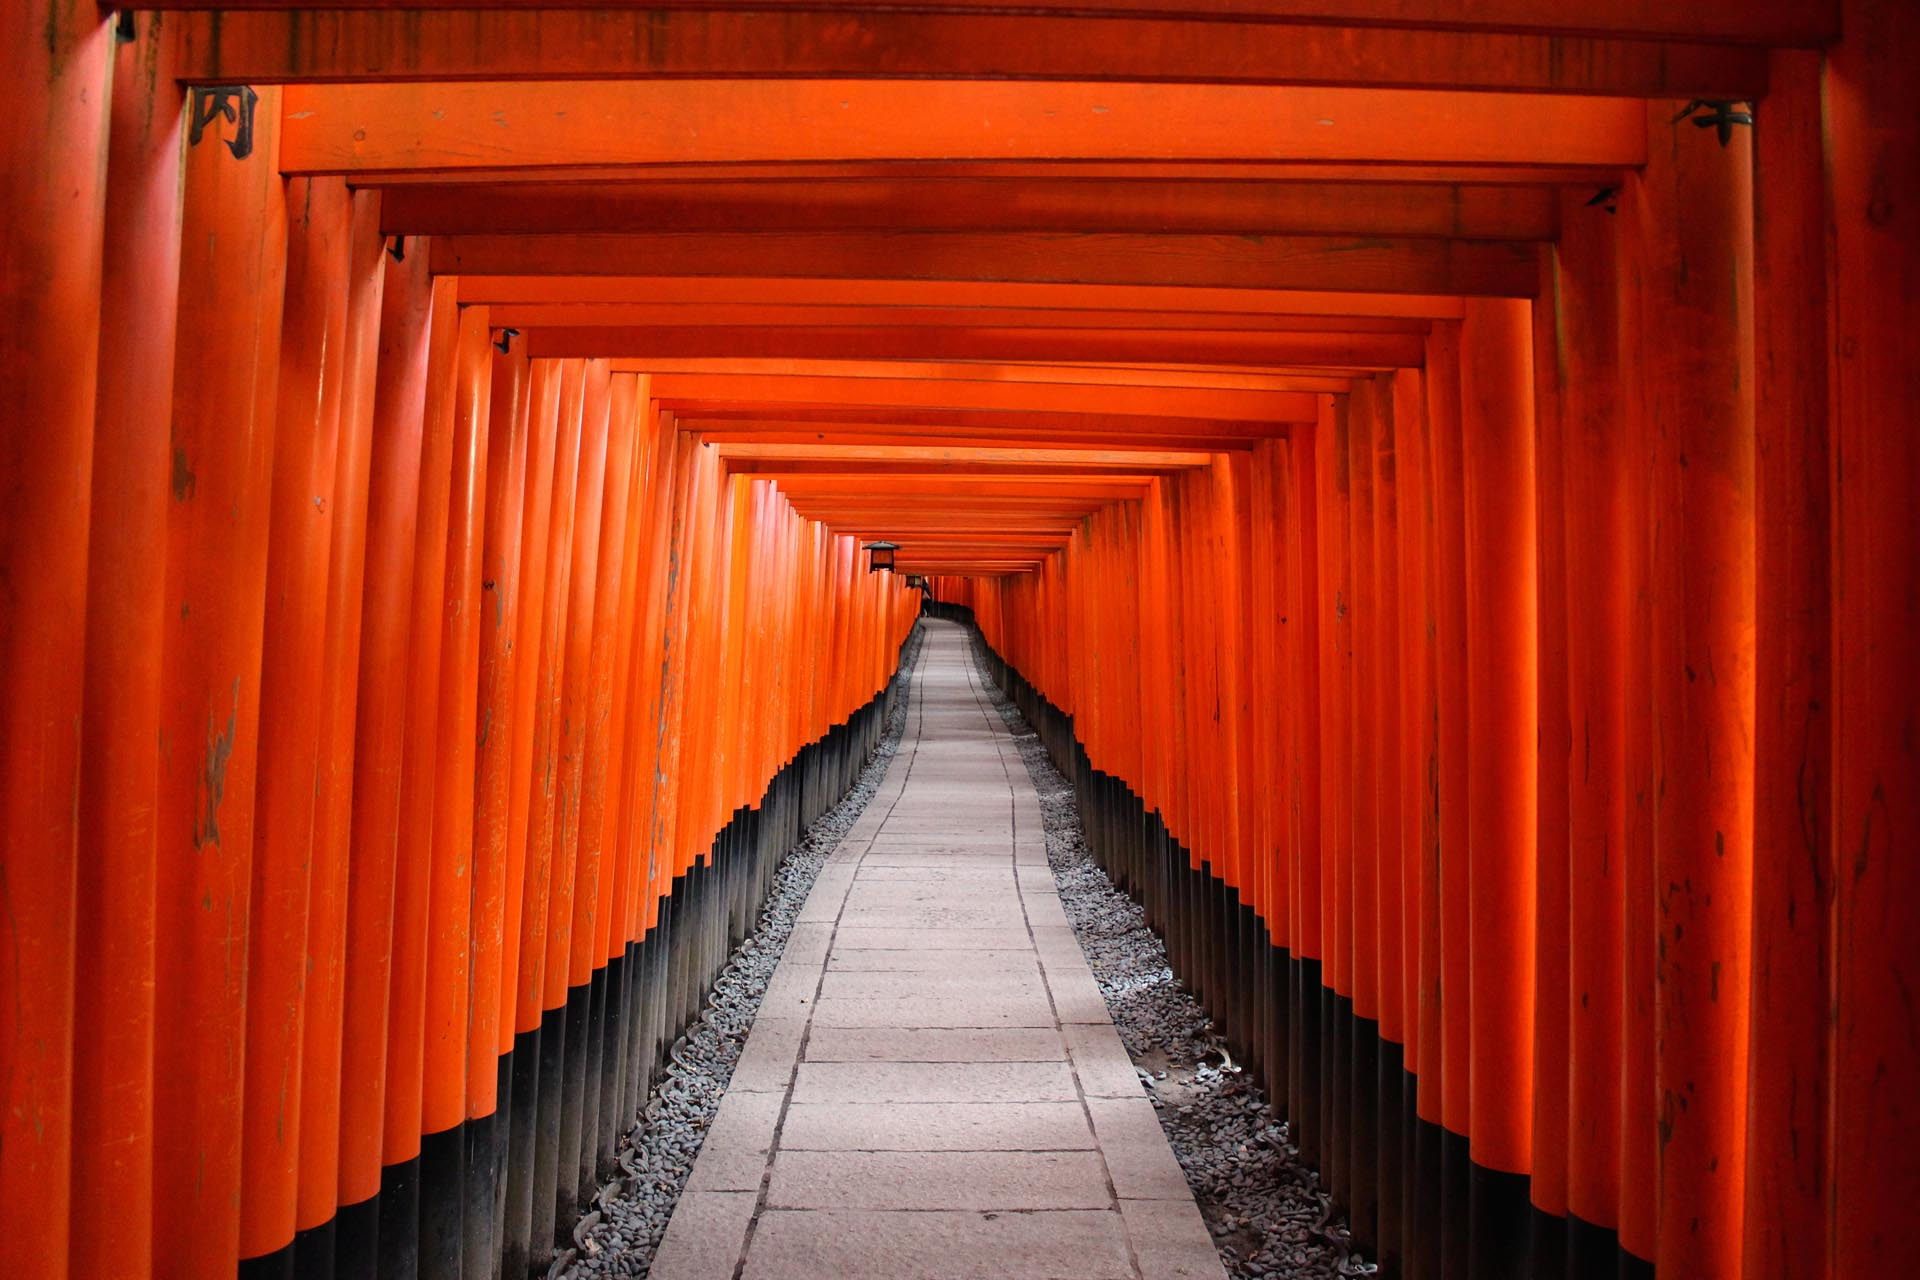 LET'S TALK - Curious about owning a part of Kyoto?